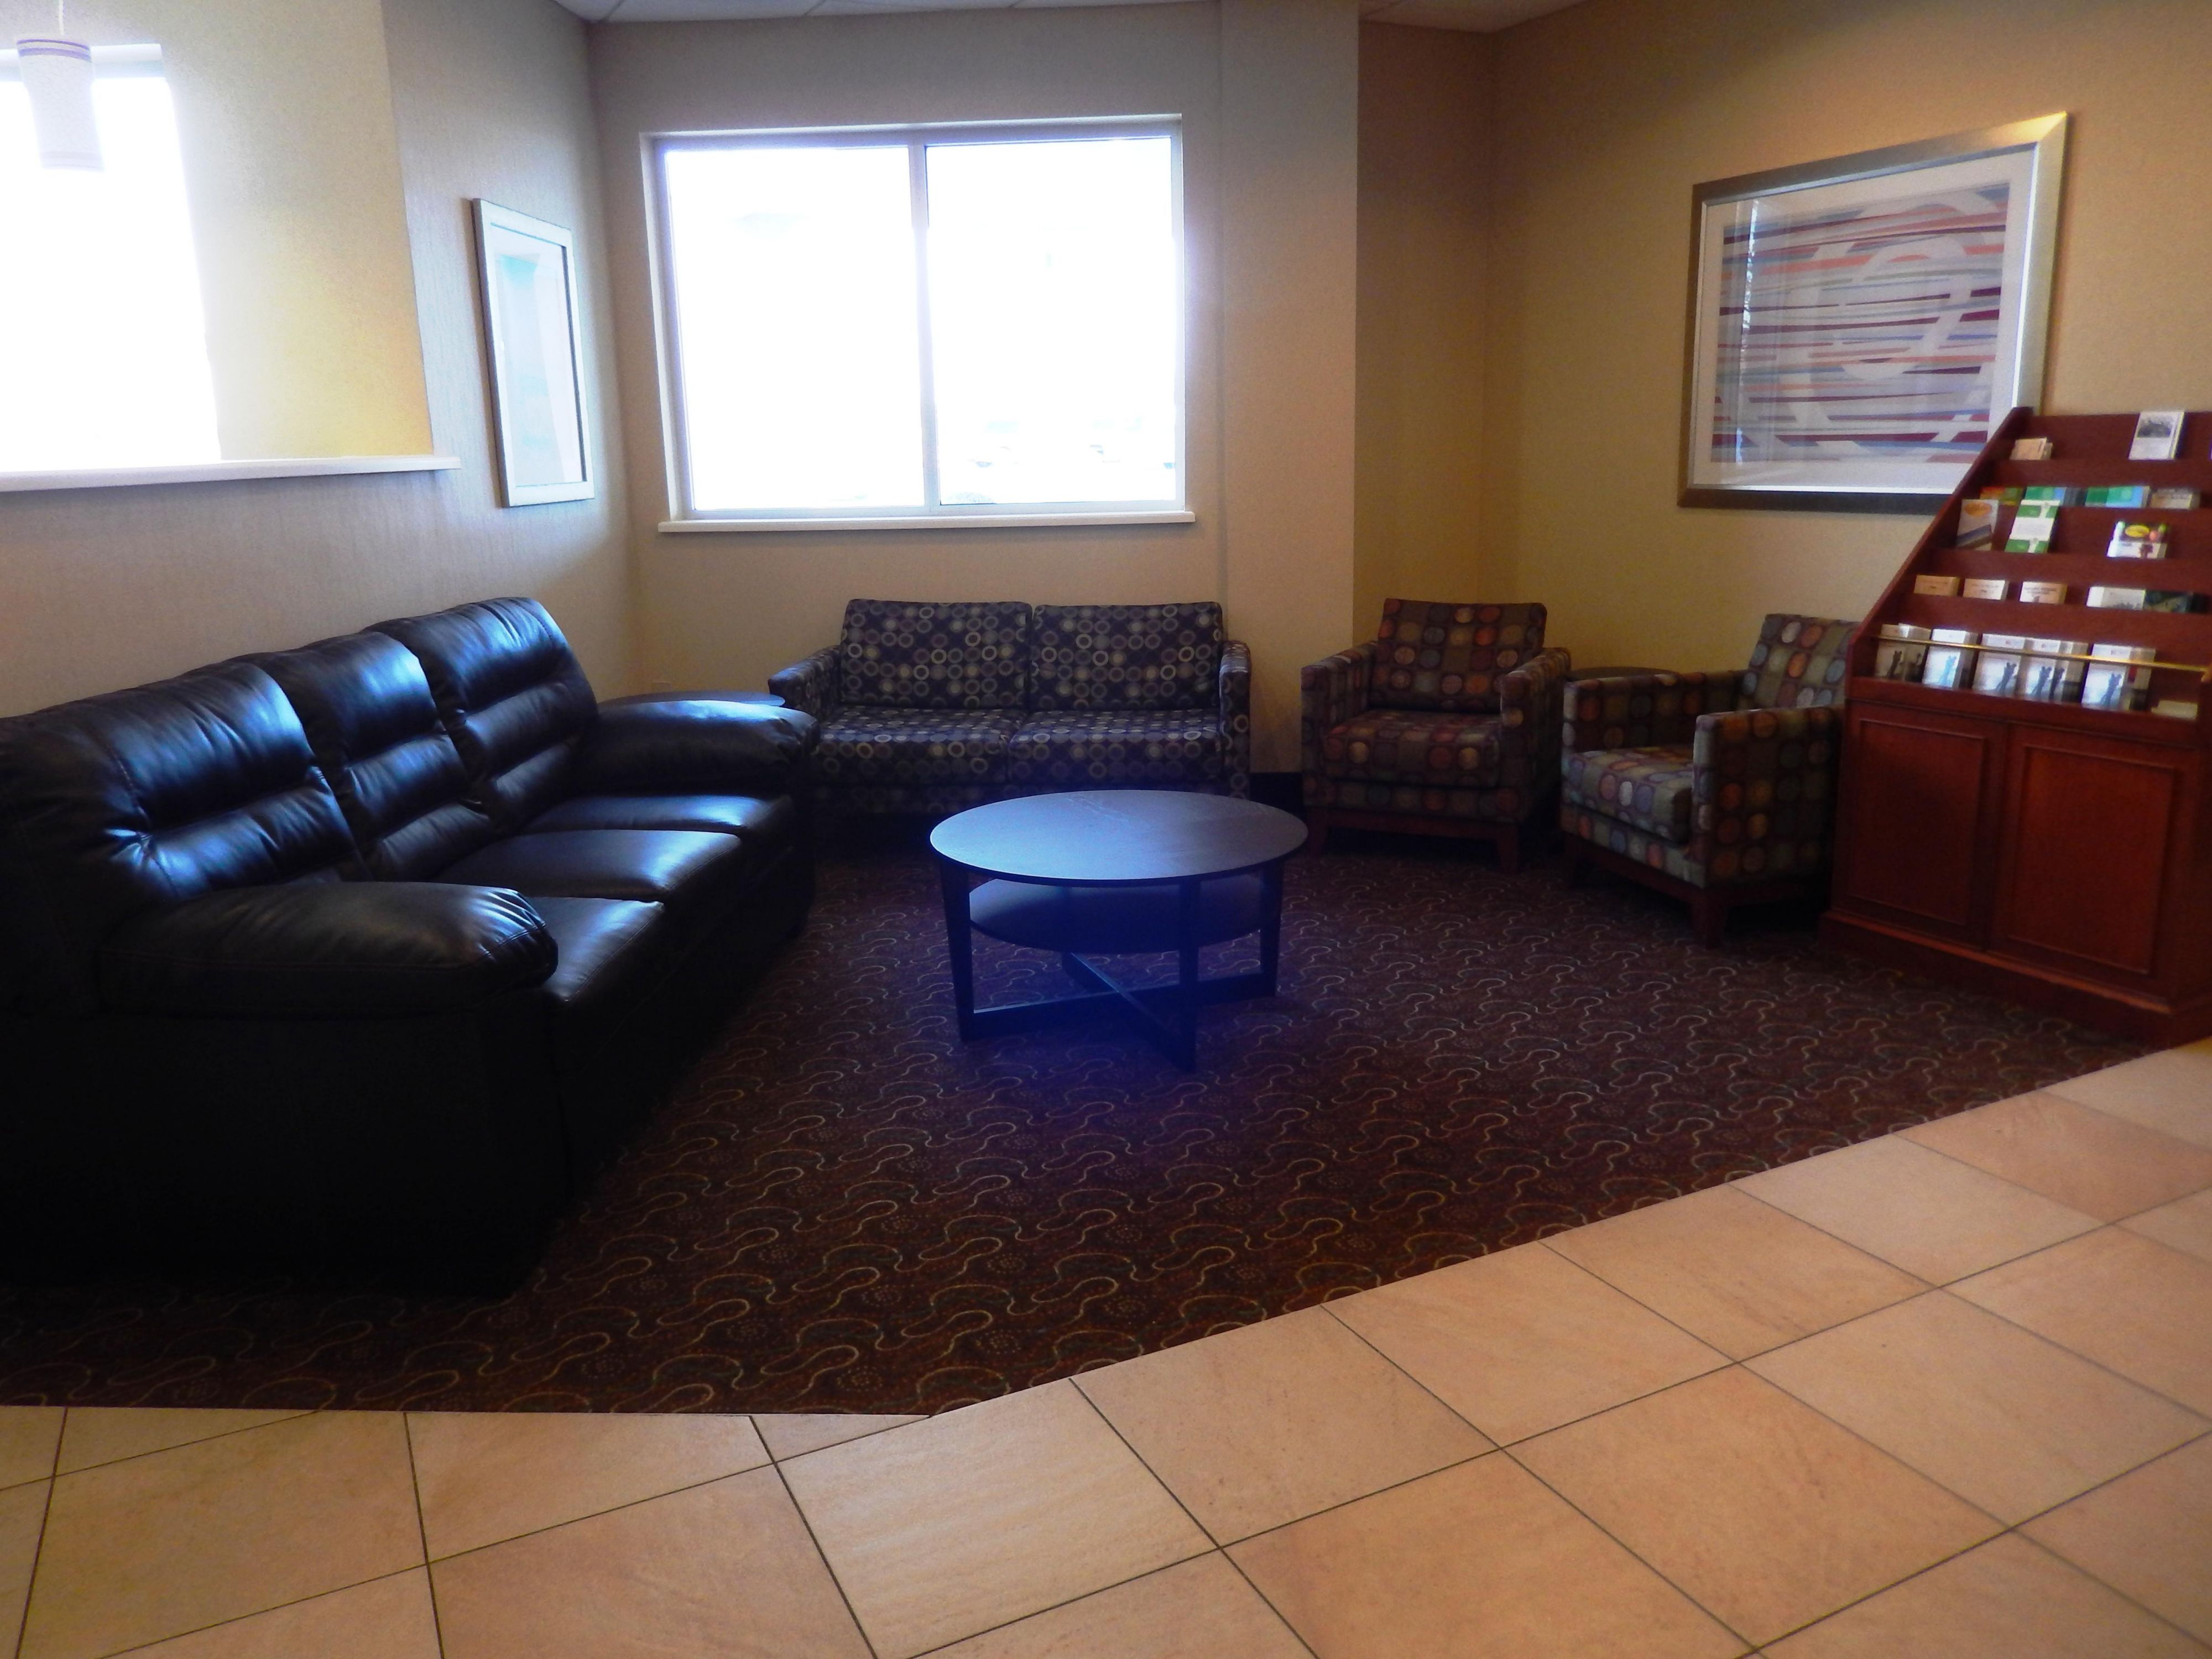 There is ample seating so you can socialize outside of your room